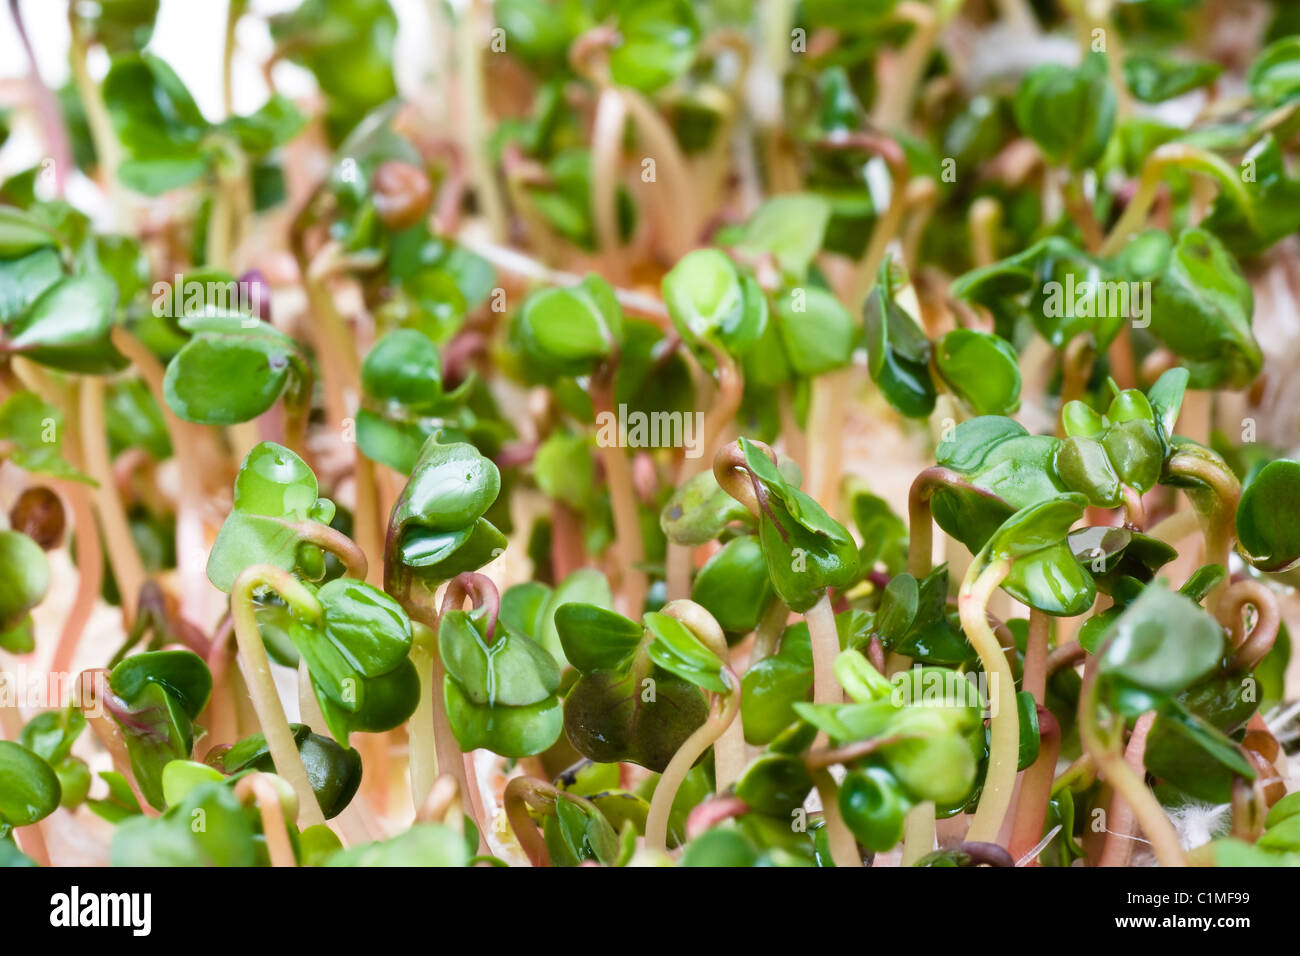 Close-up of a spicy daikon radish sprout - Stock Image